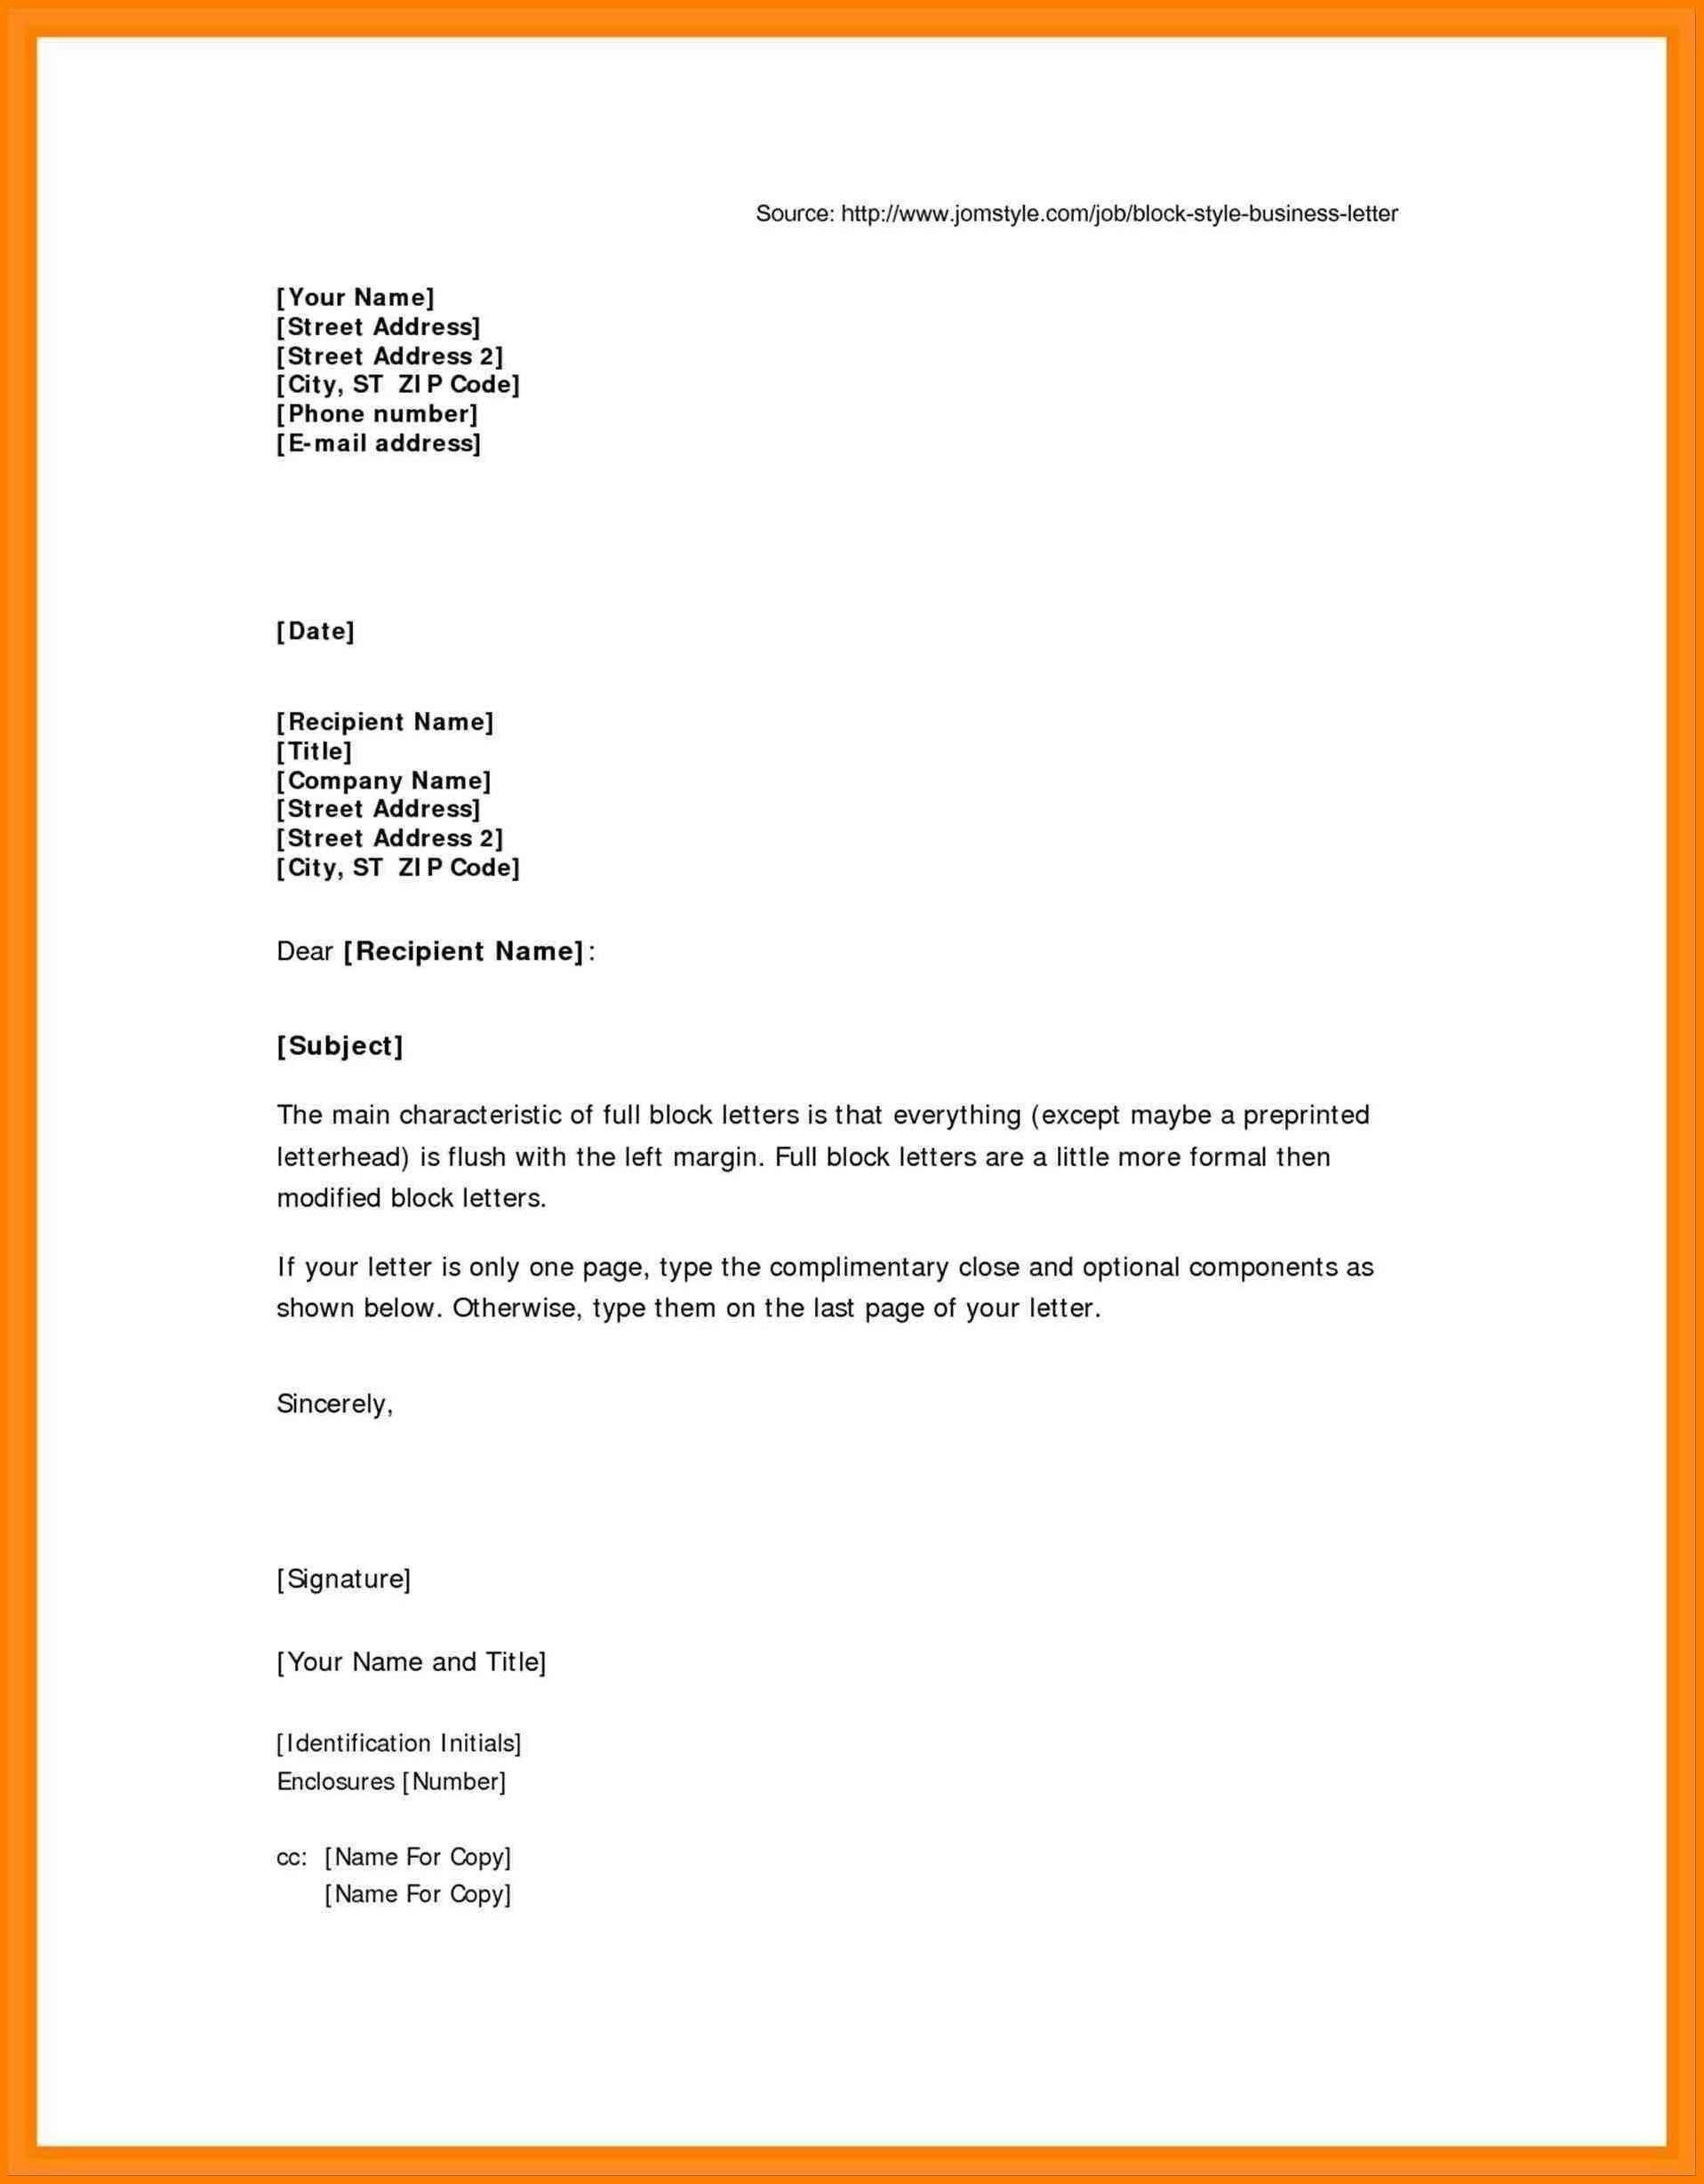 You Can See This Valid Letter Writing Enclosures And Cc At Https Www Valuexweb Com 2017 12 02 Letter W Letter Format Business Letter Business Letter Template